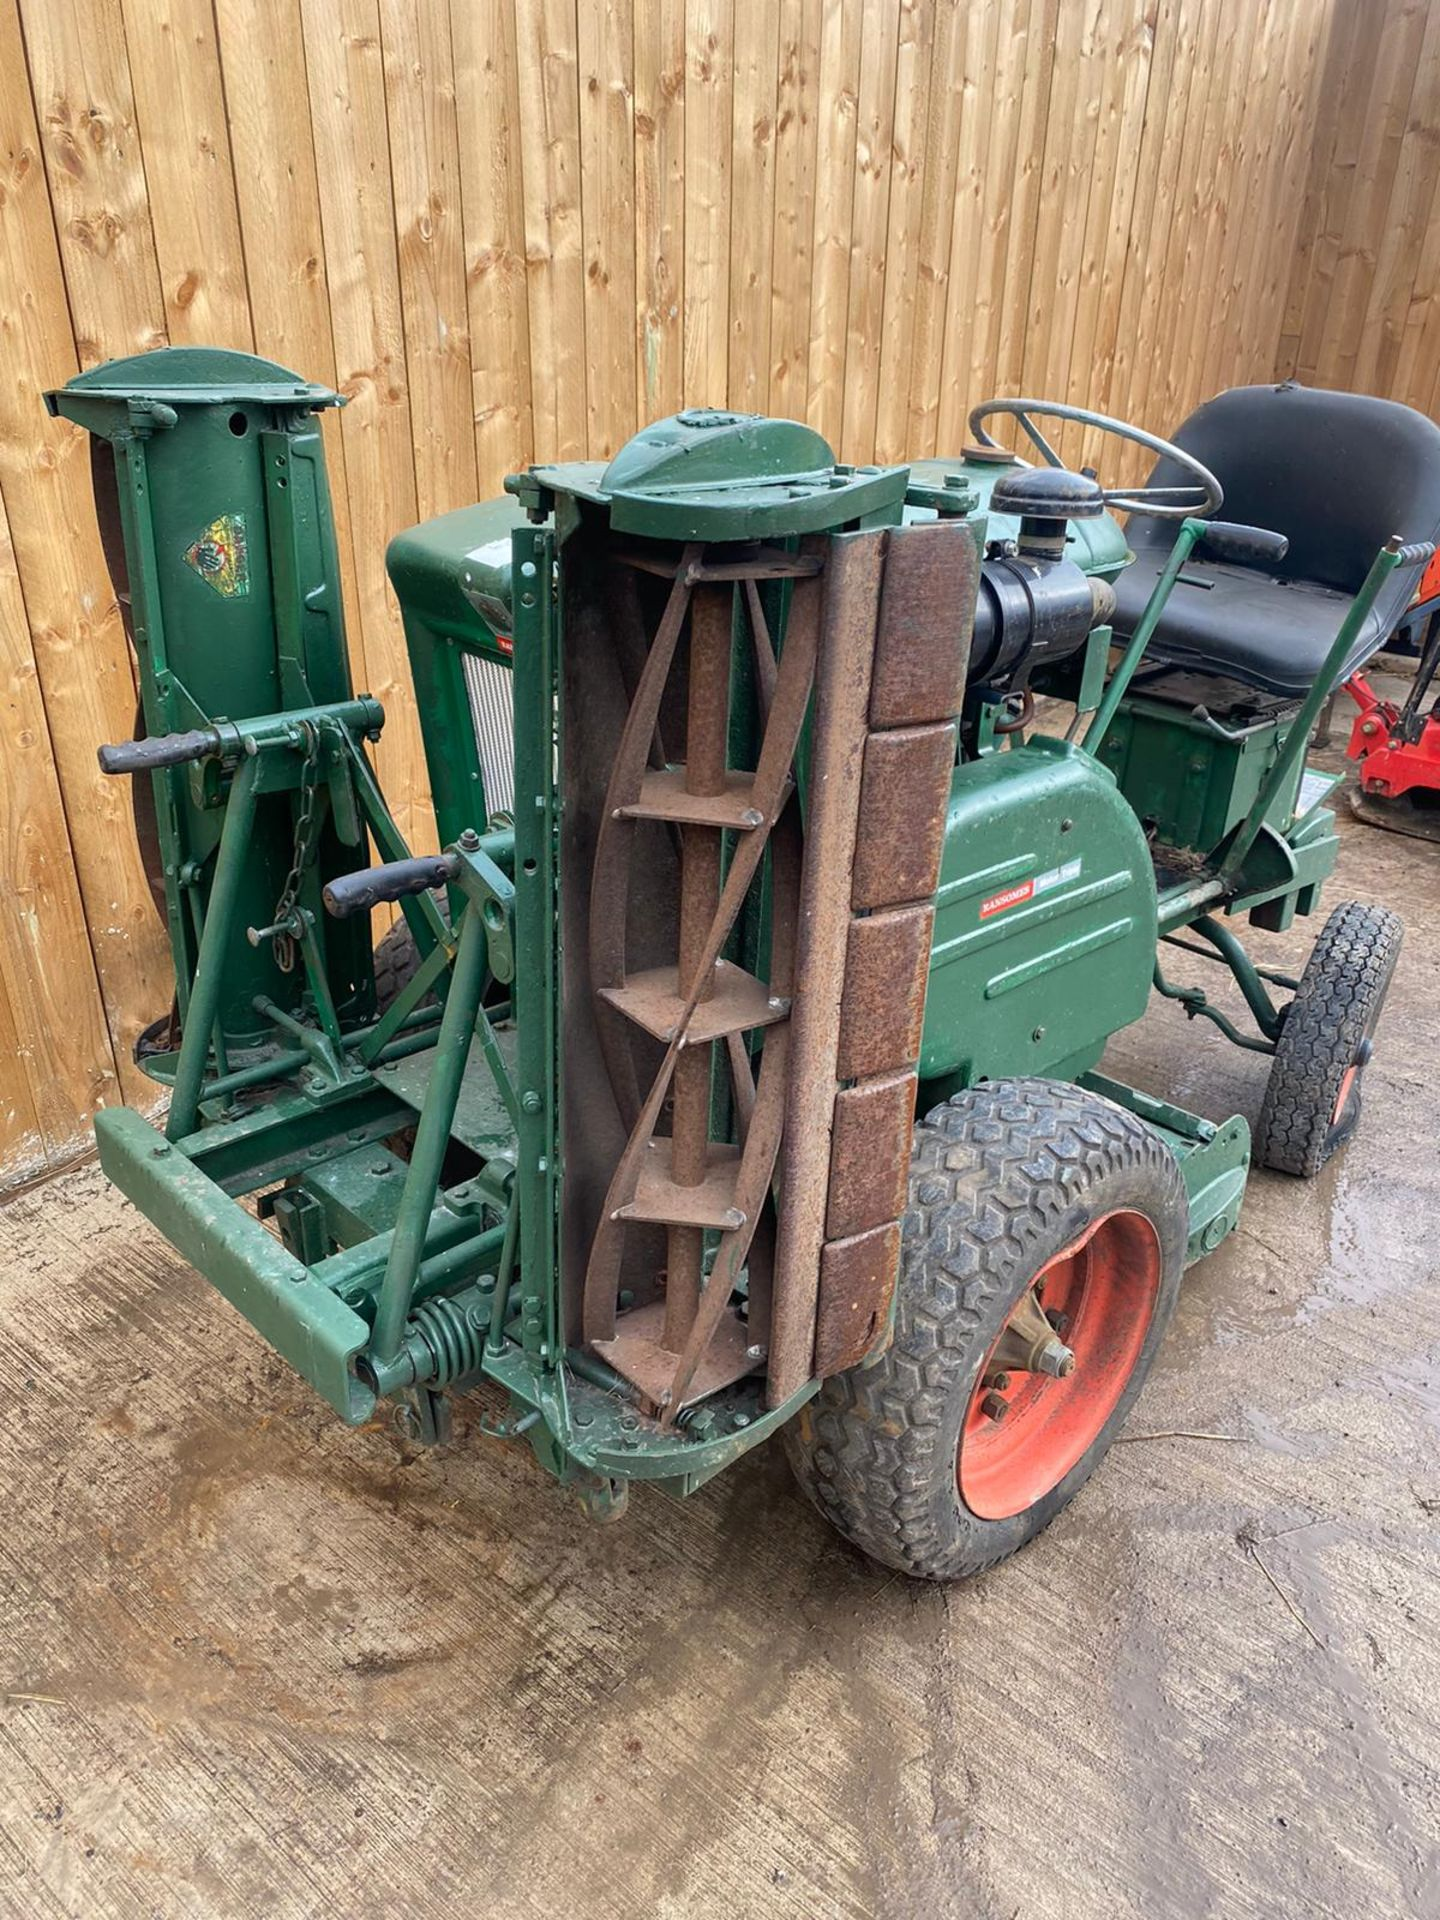 RANSOMES MOTOR TRIPLE DIESEL MOWER, KUBOTA DIESEL ENGINE, STARTS, FIRST TIME, RUNS, DRIVES, CUTS - Image 5 of 5